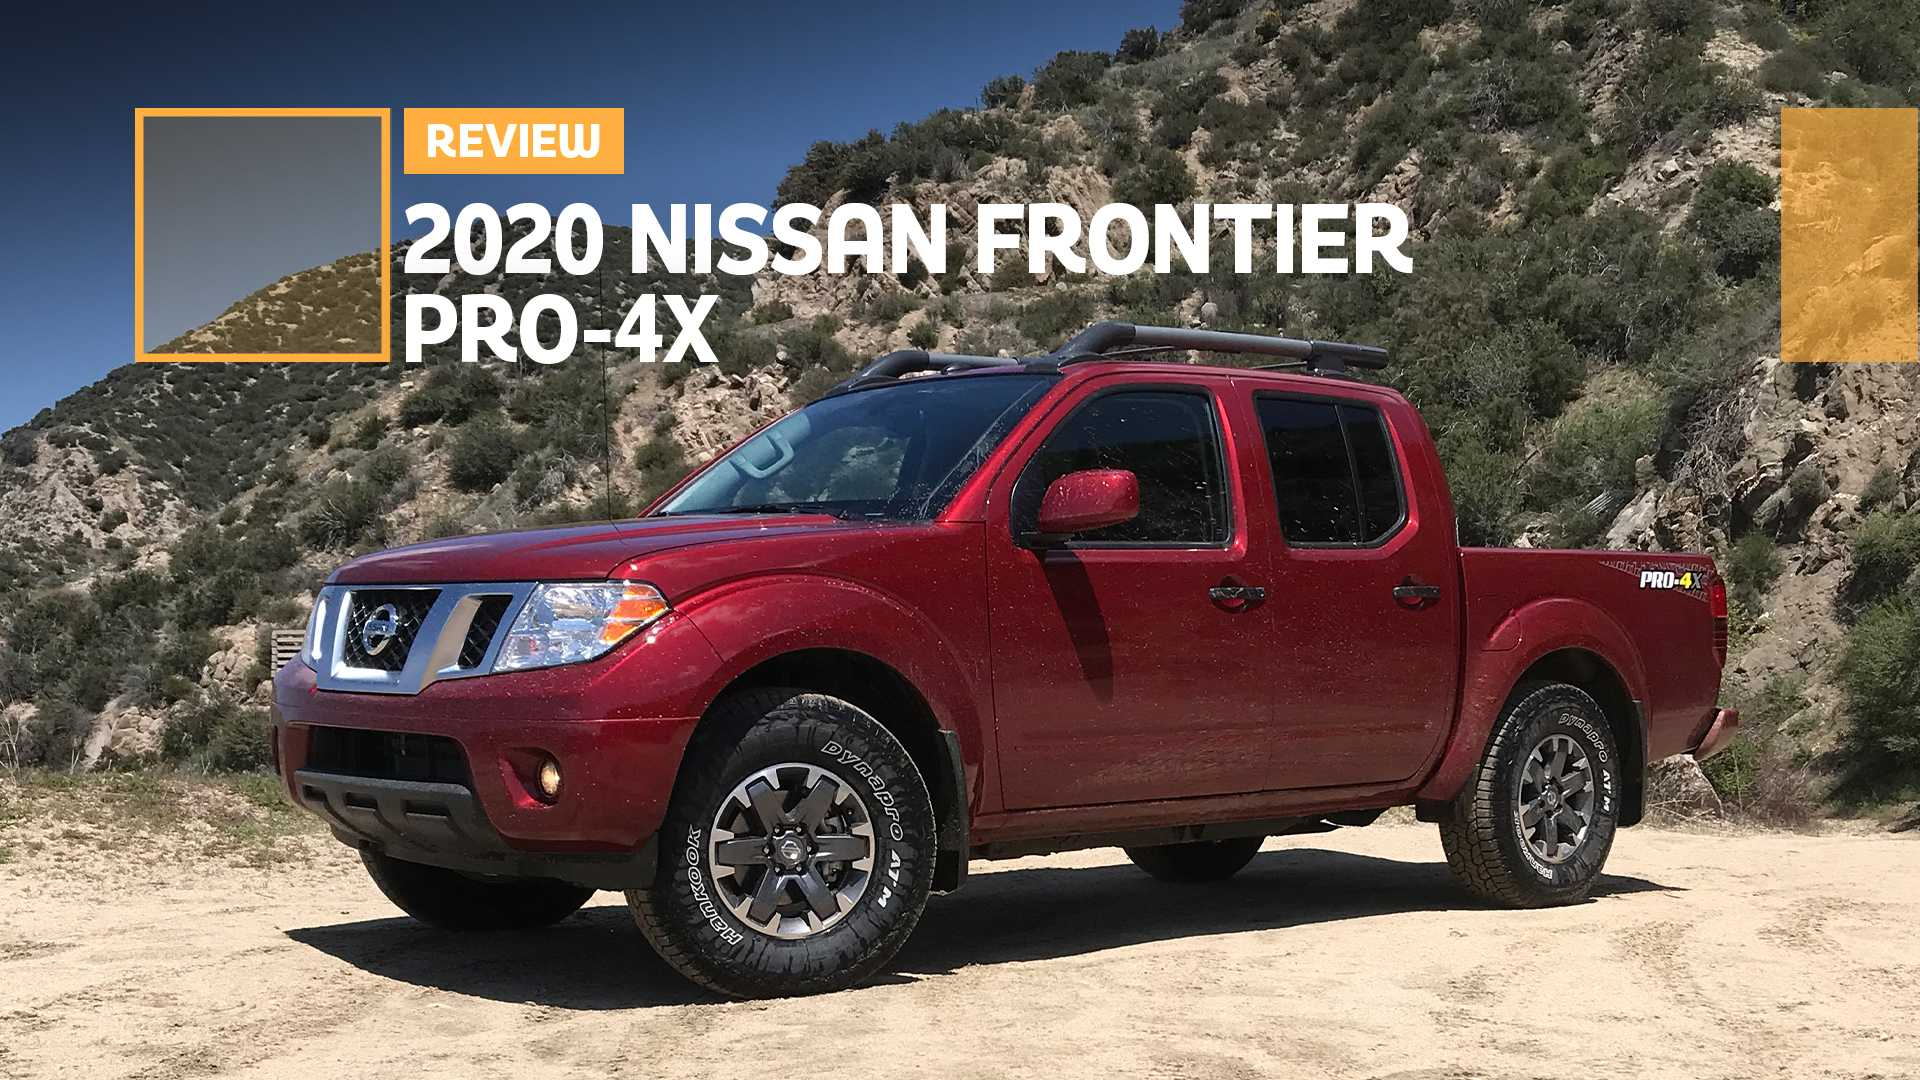 2020 Nissan Frontier Pro 4x Review New Engine Same Old Charm